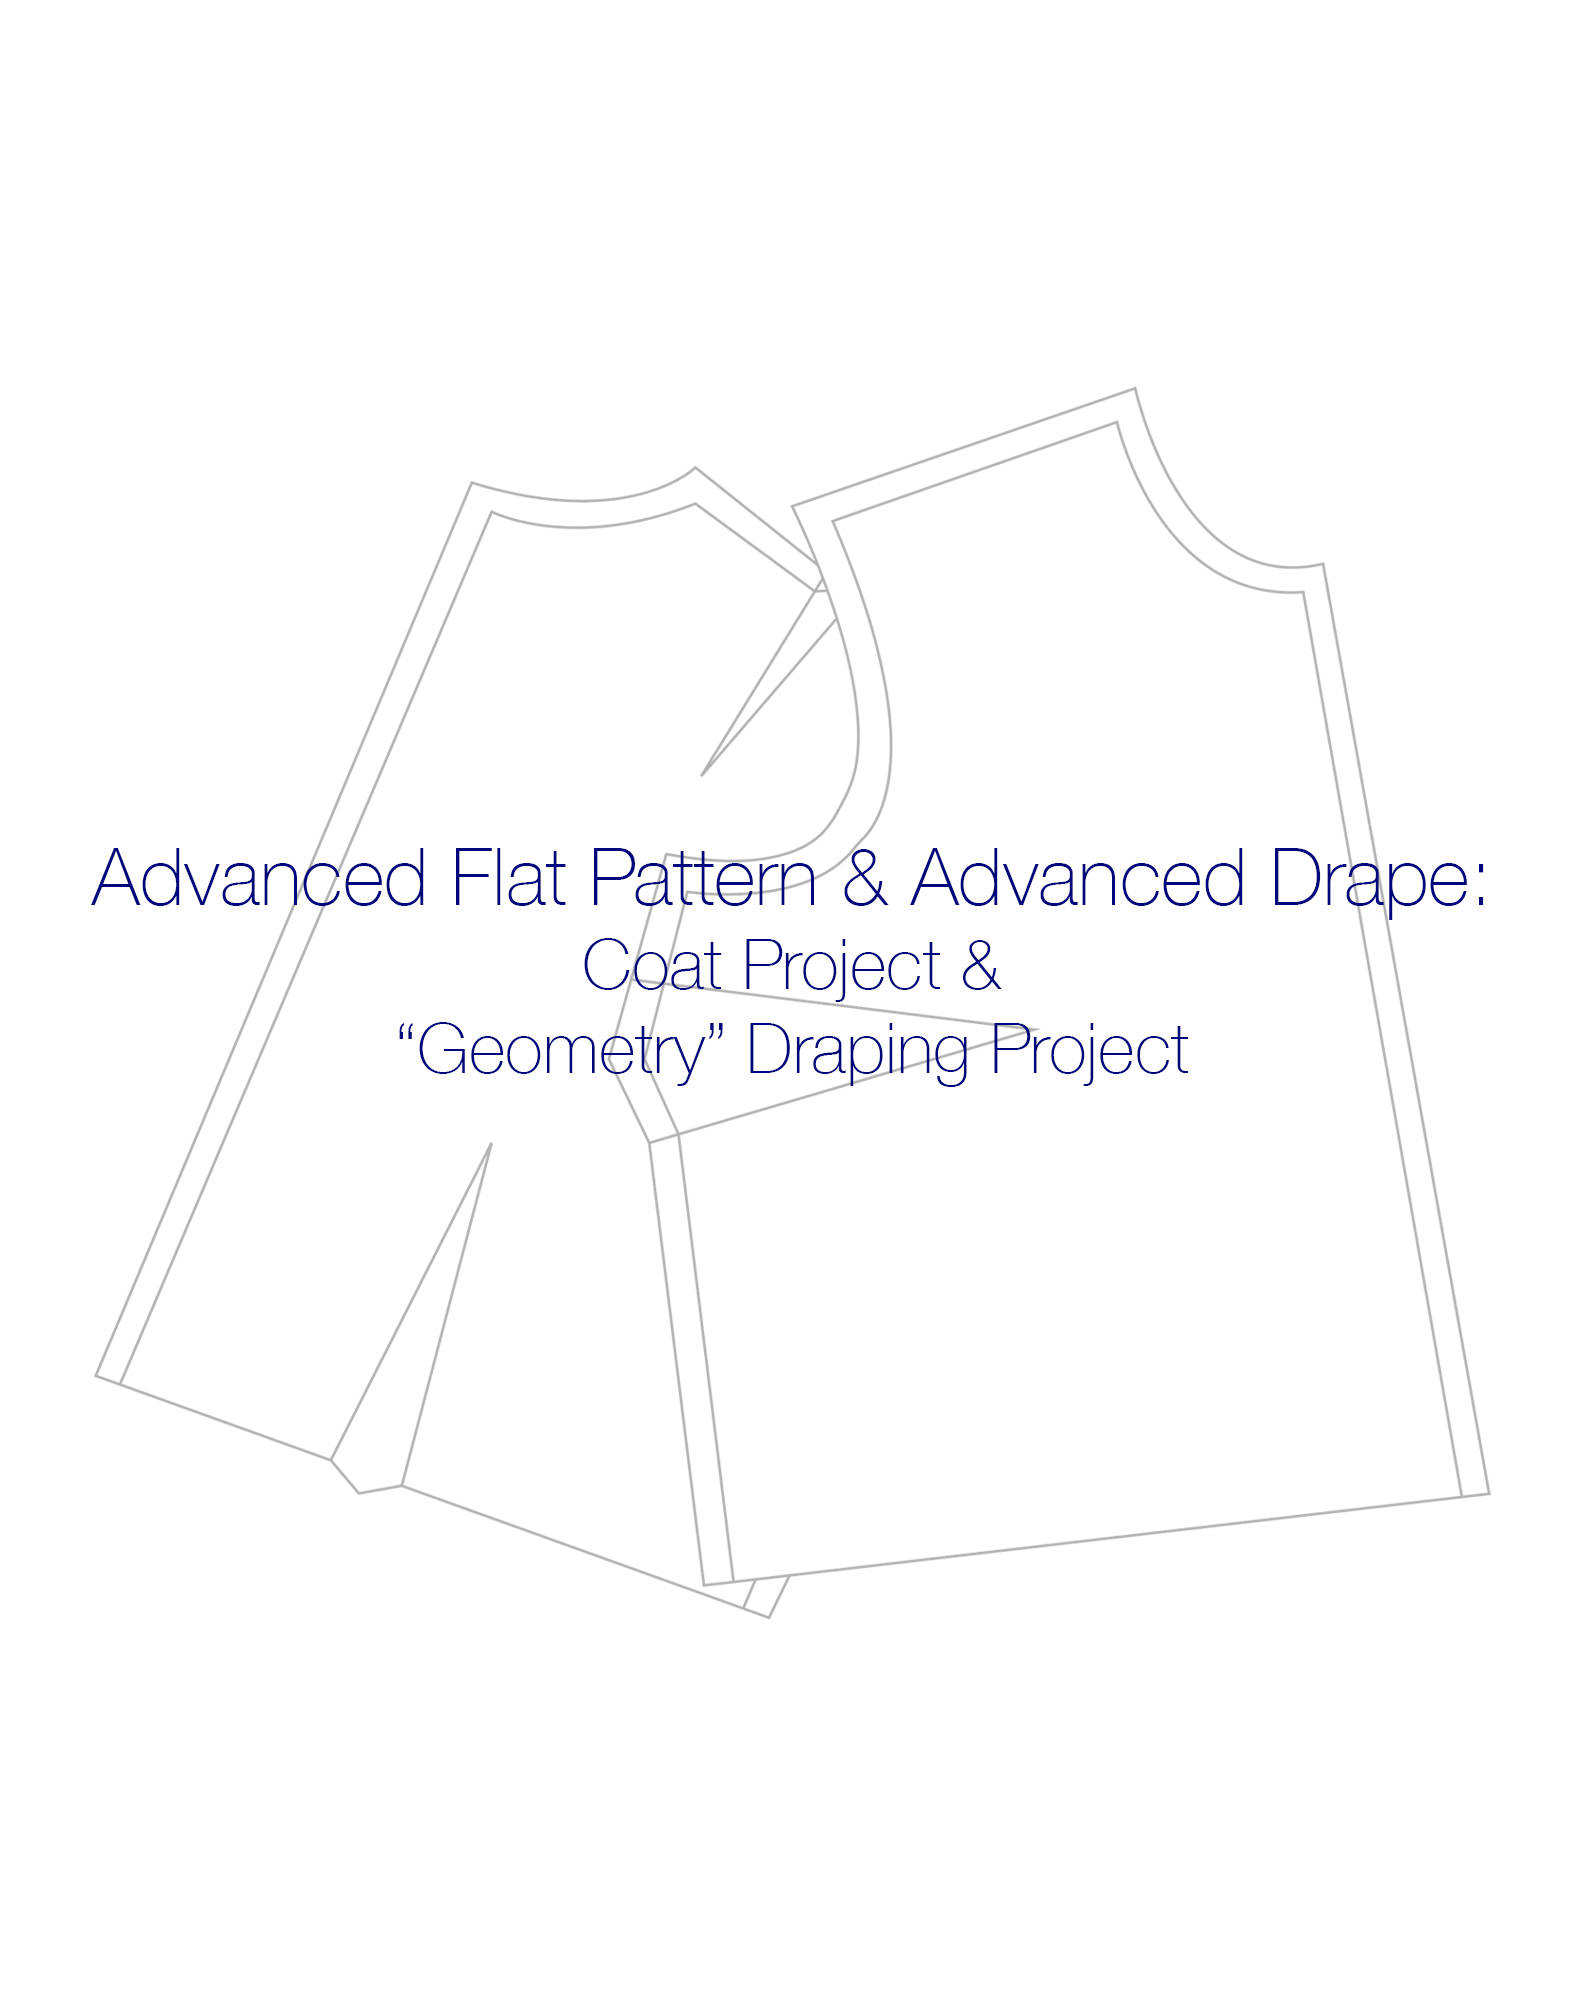 Advanced Flat & Drape Projects